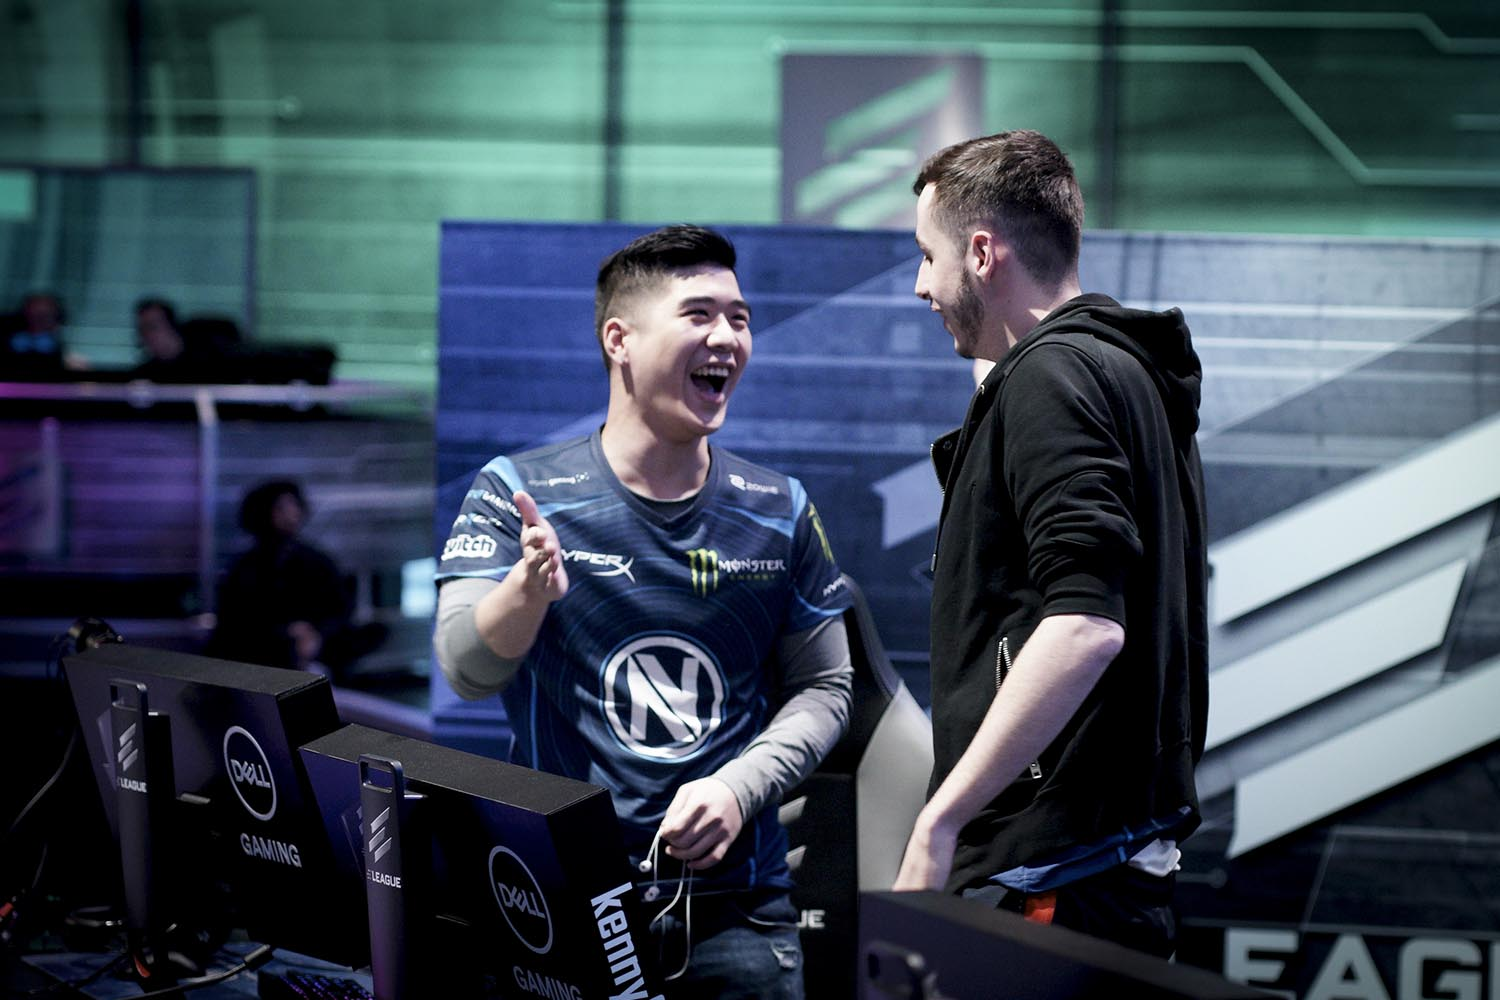 Major 2017 Day 3